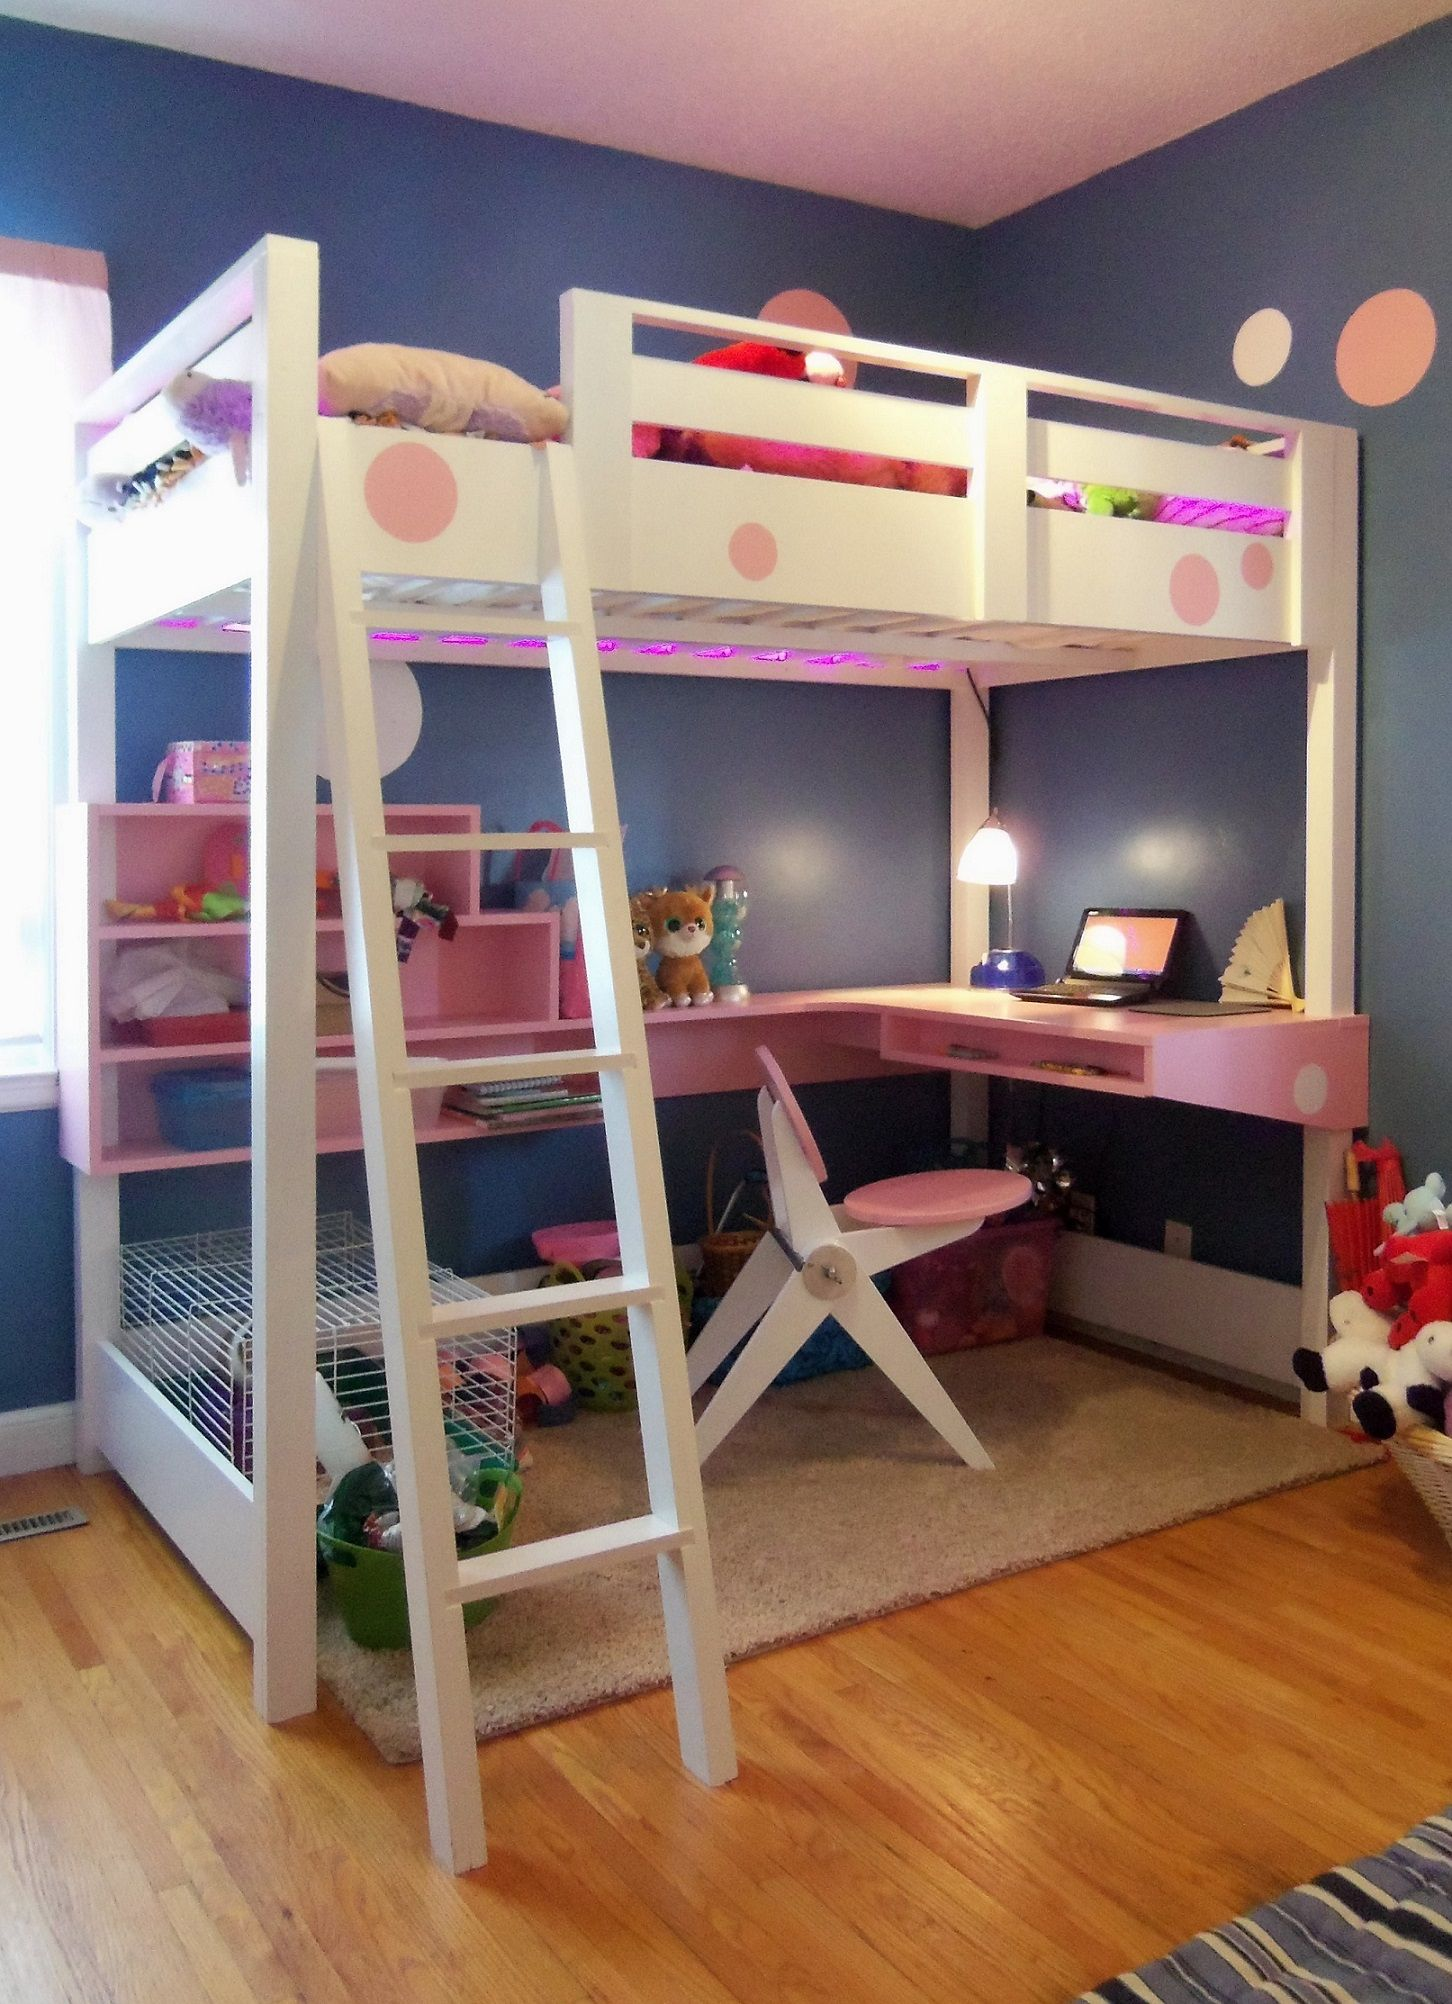 Bunk Bed With Desk Underneath For Sale Living Room Sets For Small